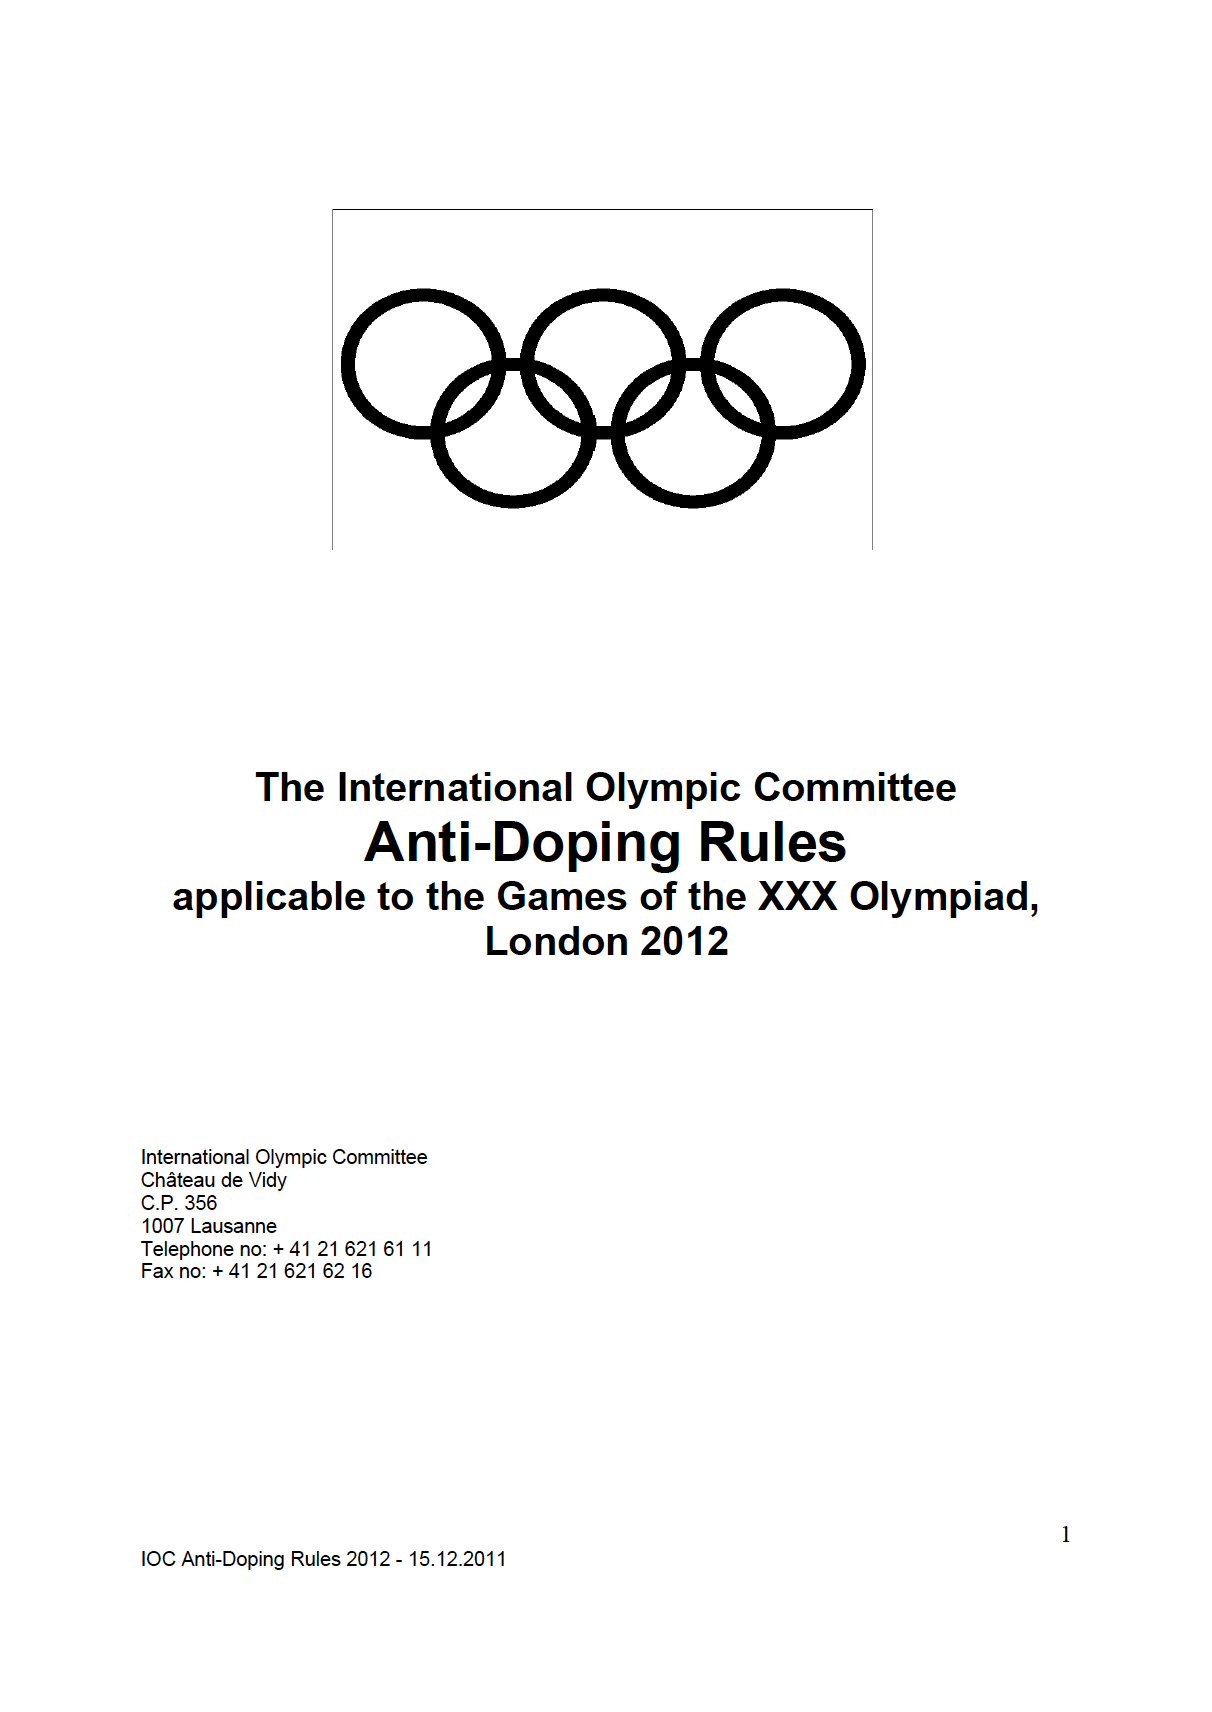 London 2012 Anti-Doping Rules